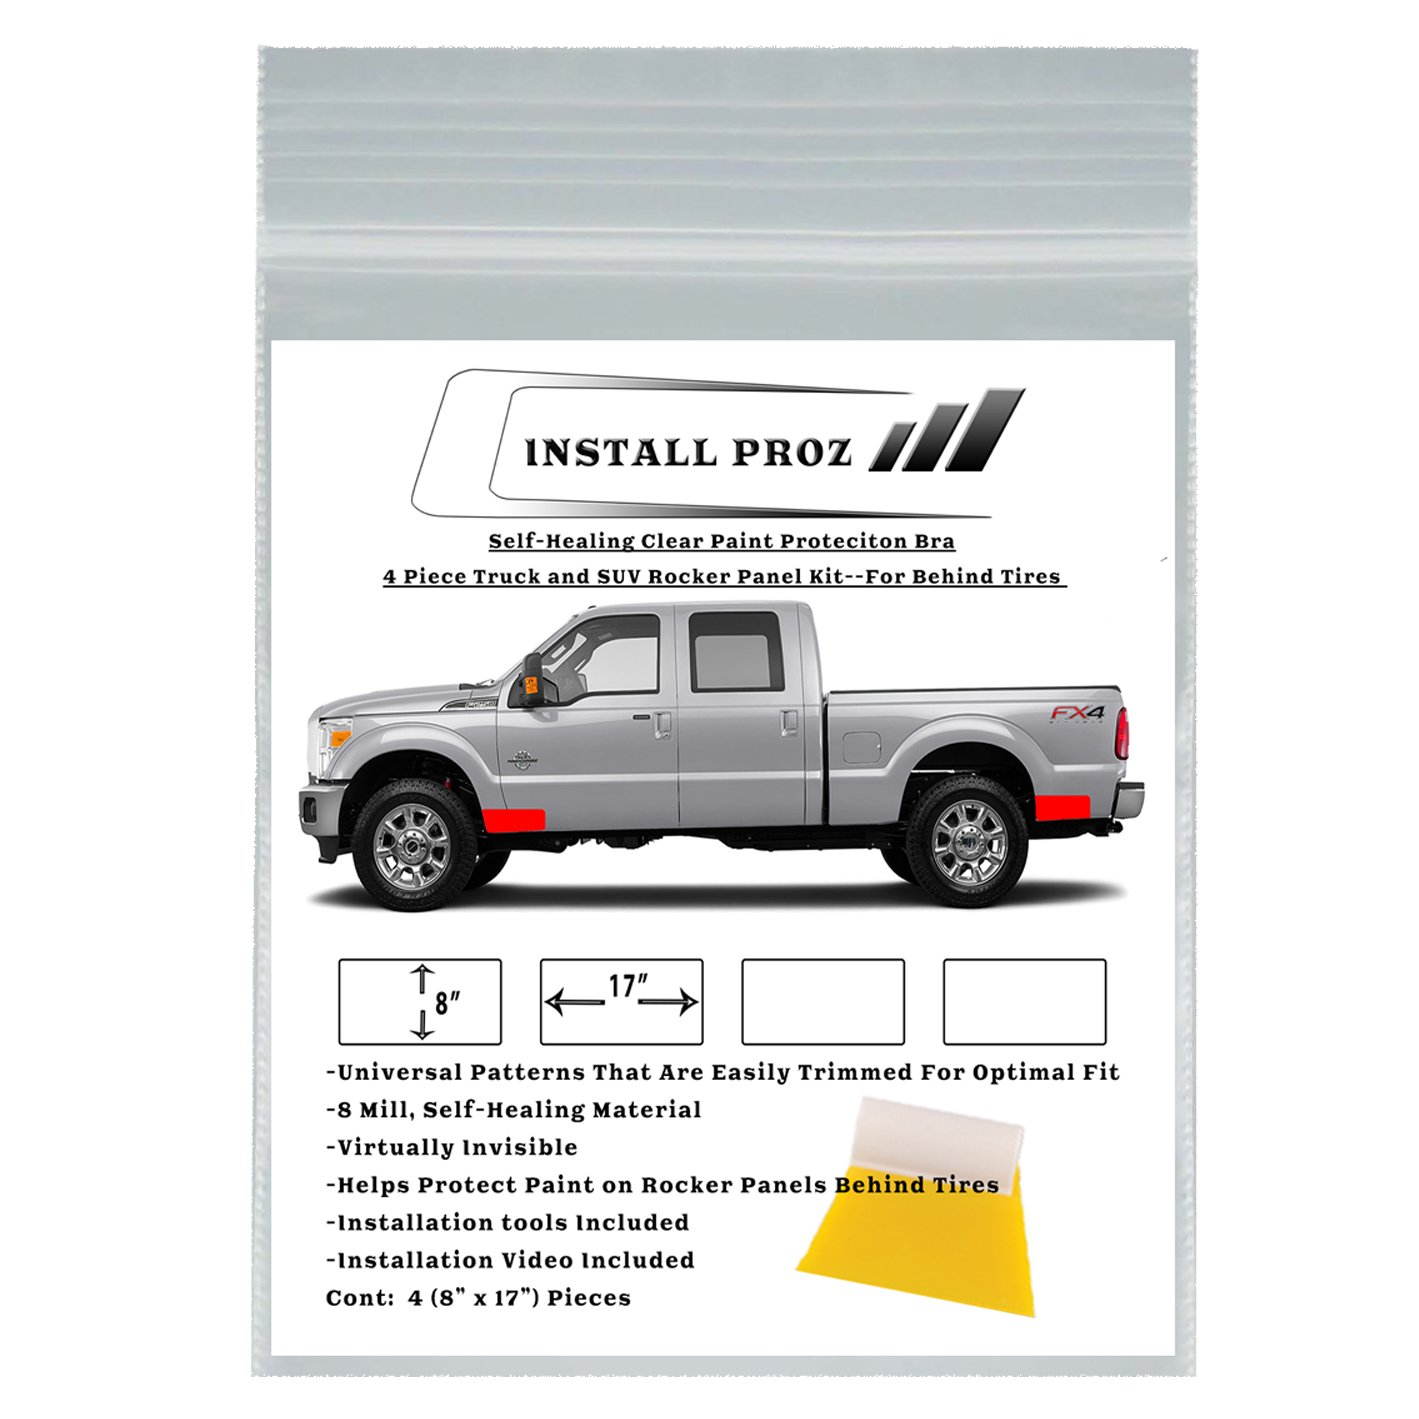 Install Proz Clear Paint Protection Film-4 Piece Rocker Panel Kit